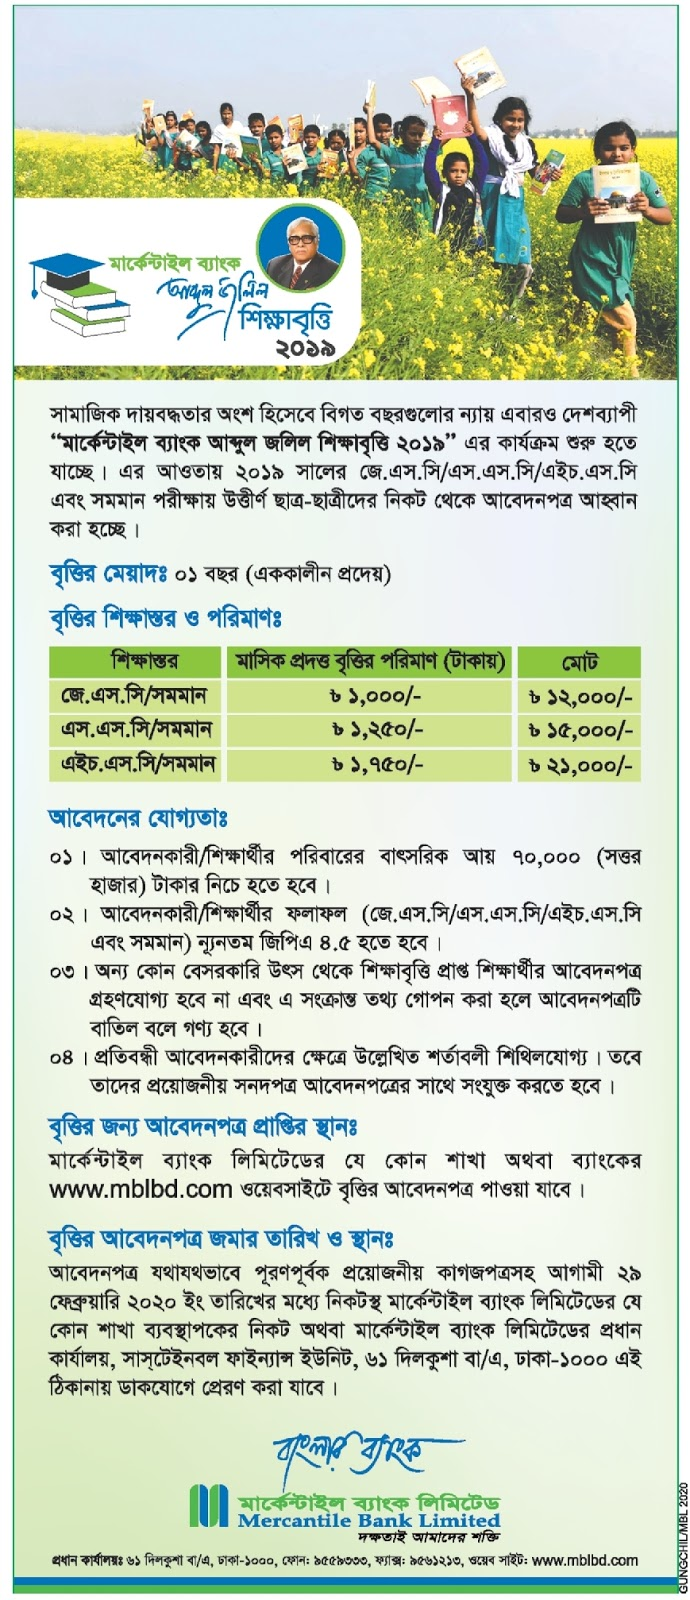 Mercantile Bank Limited Scholarship Notice